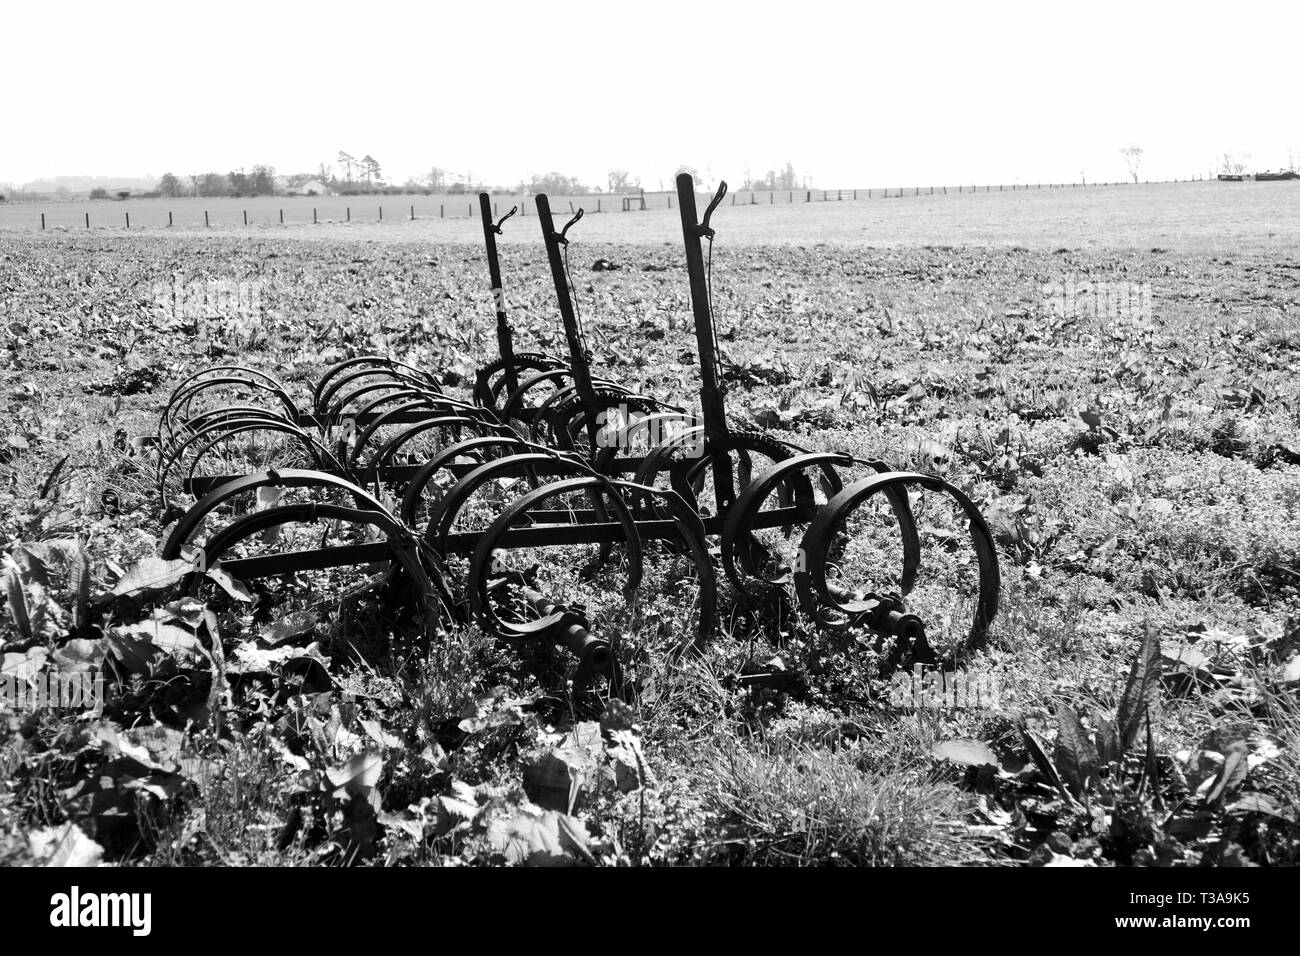 Farming tools black and white stock photos images alamy